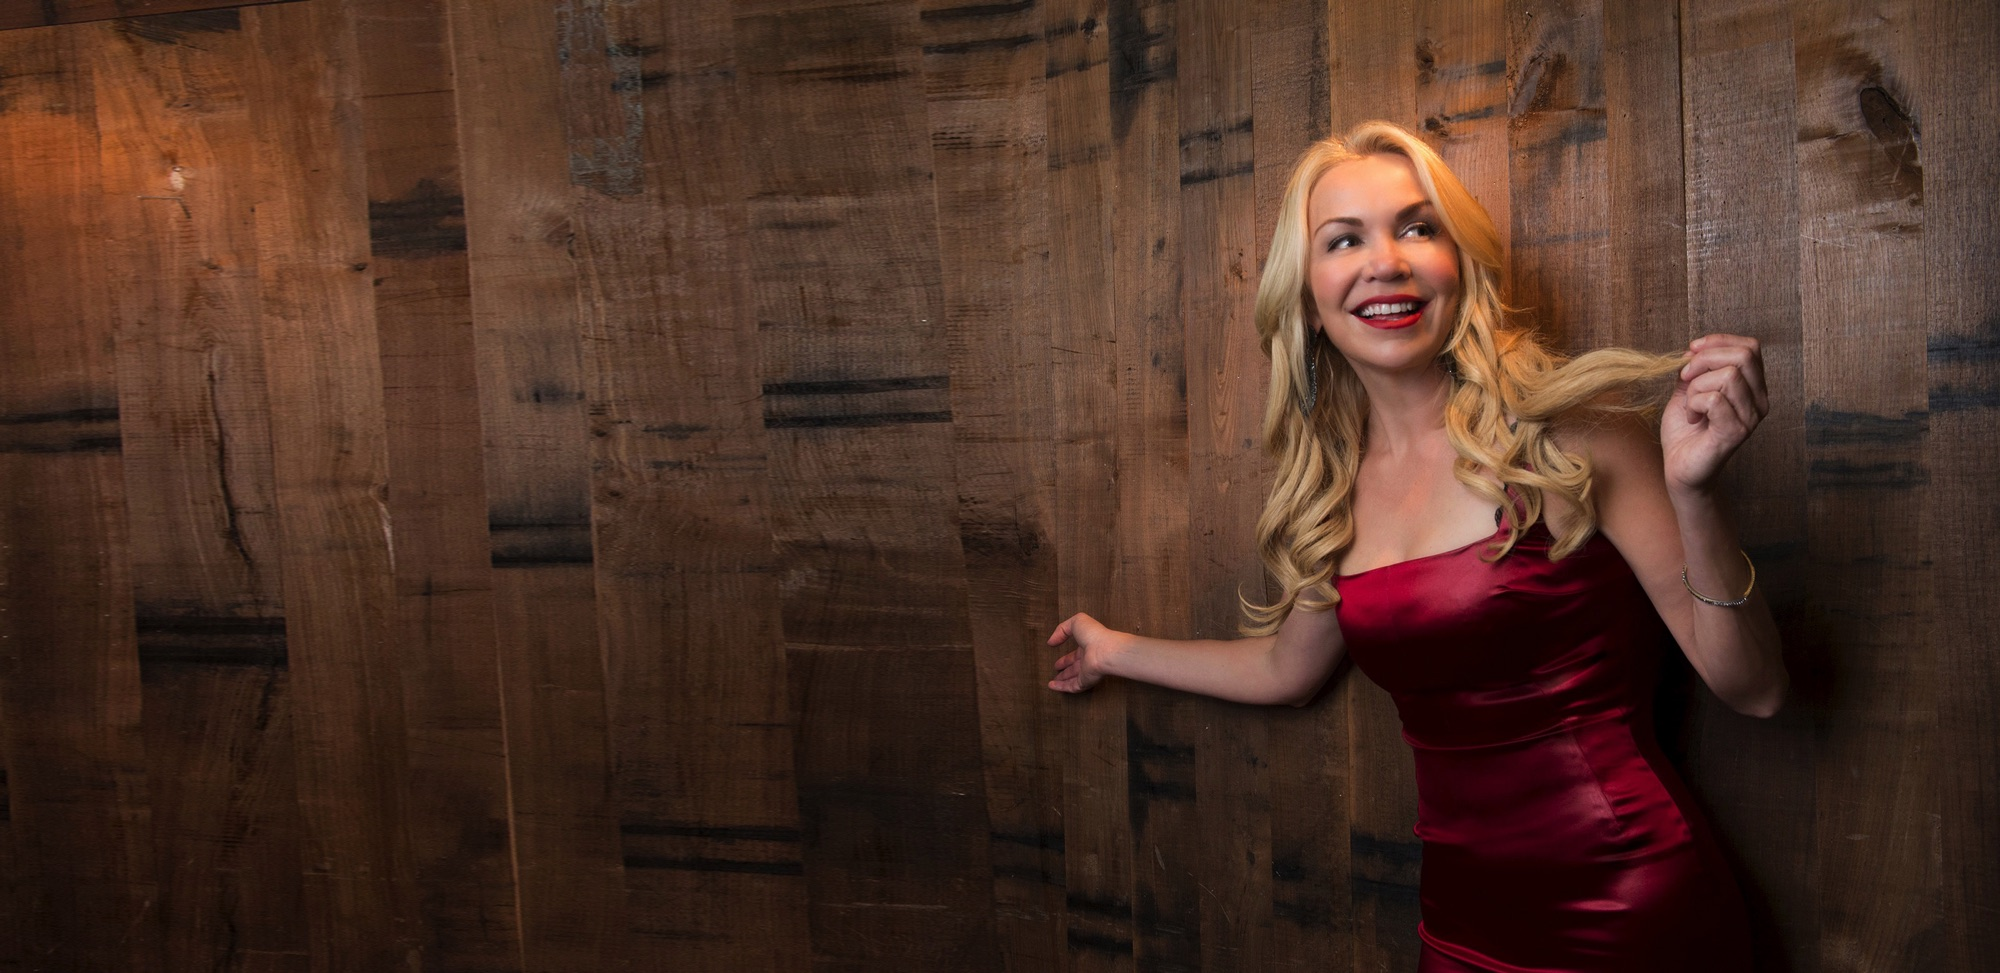 Anna-Danes-Wood-Wall-Marilyn-Room-Stretch2